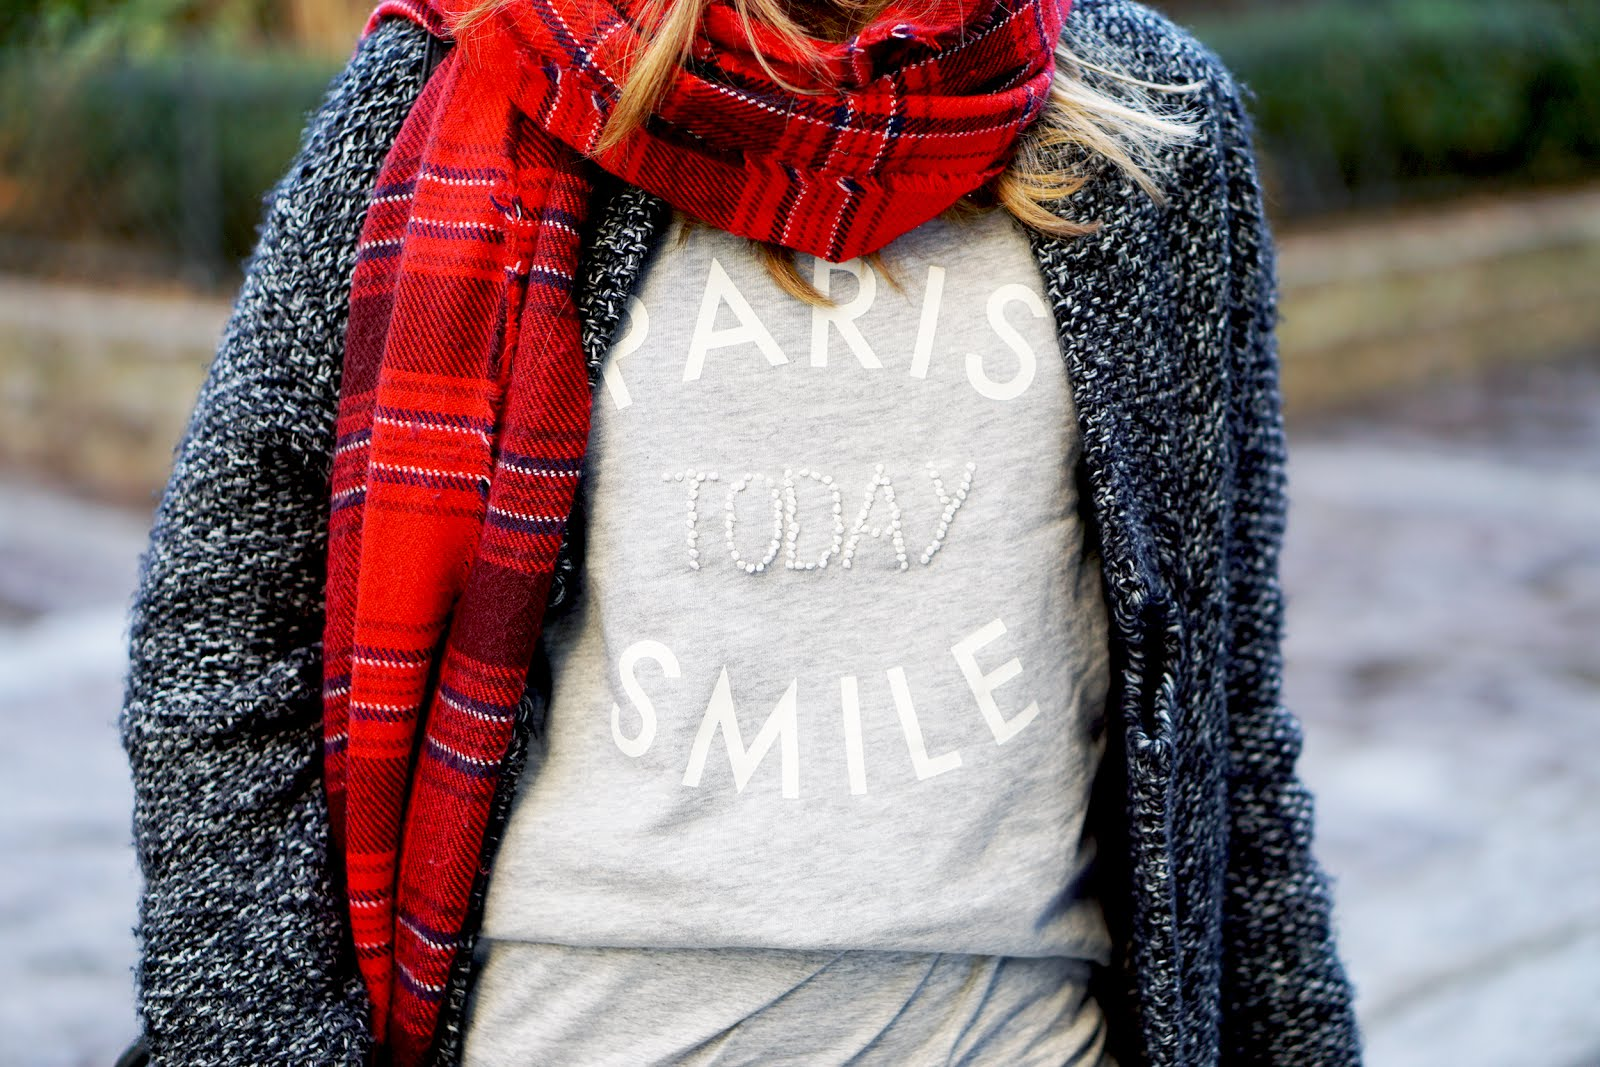 paris today smile